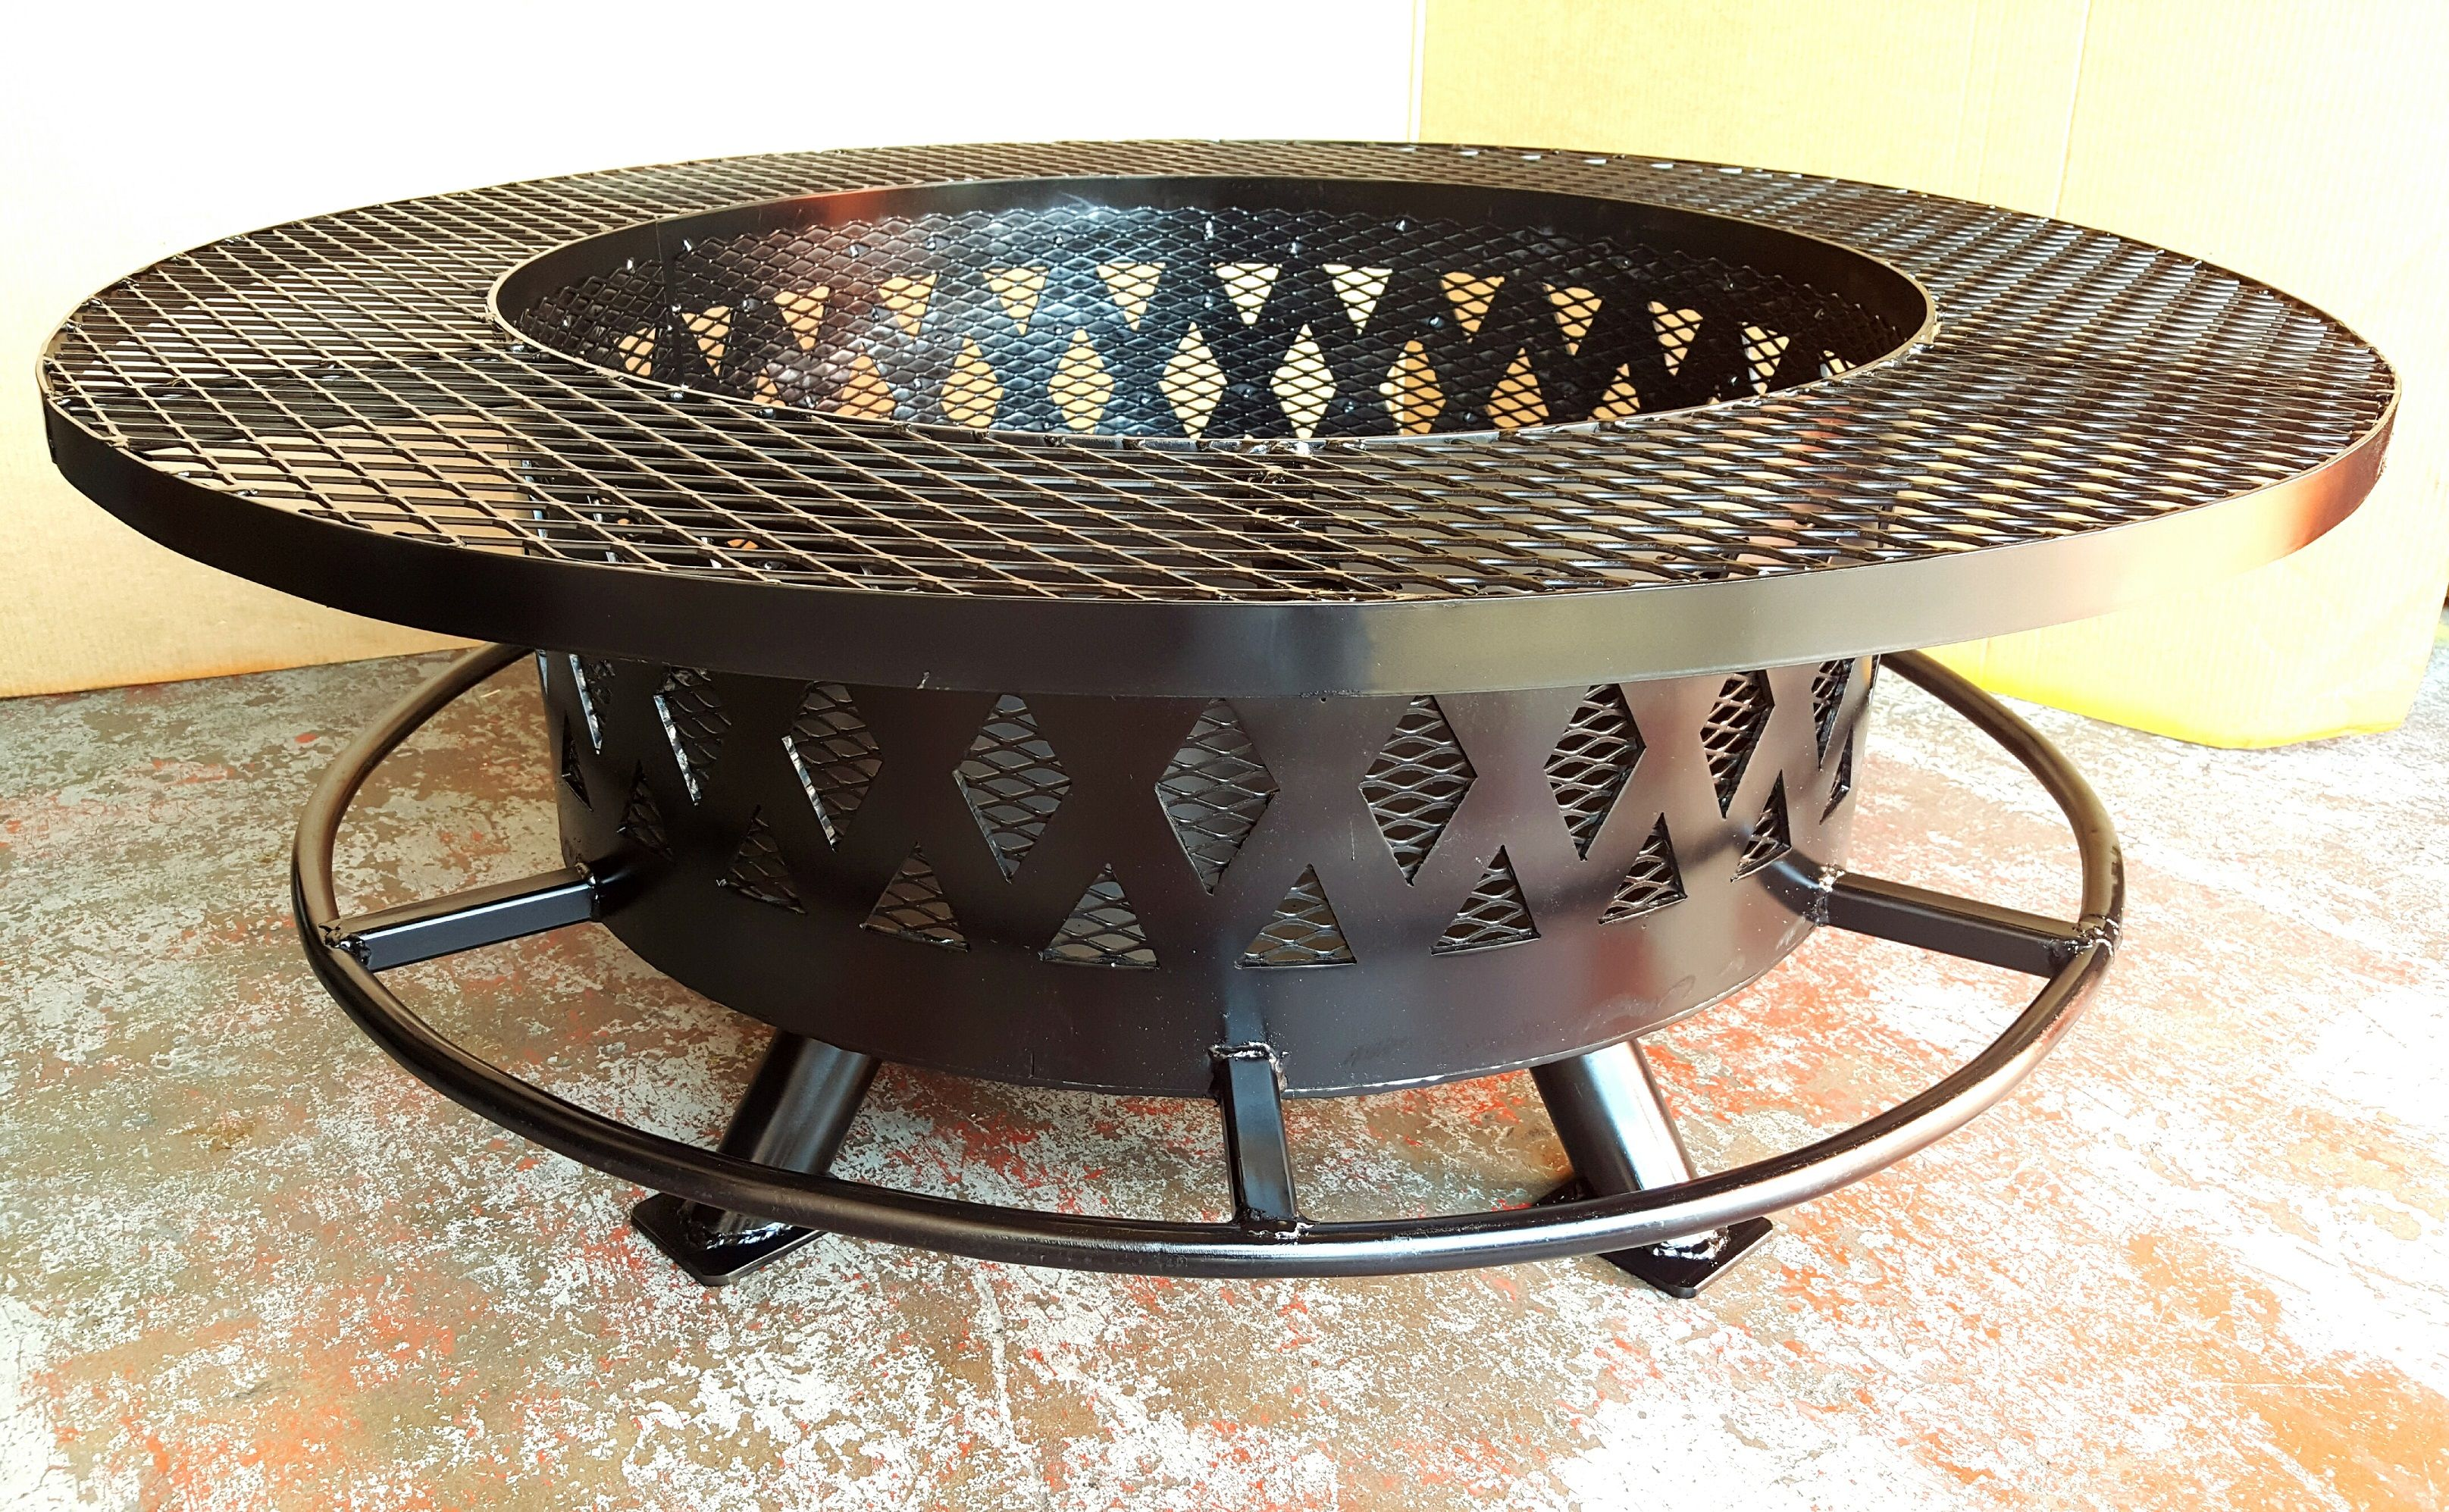 A Custom 30 Inch Steel Fire Pit I Made With Basket Weave Design Boot Rest And Side Table Fire Pit Round Fire Pit